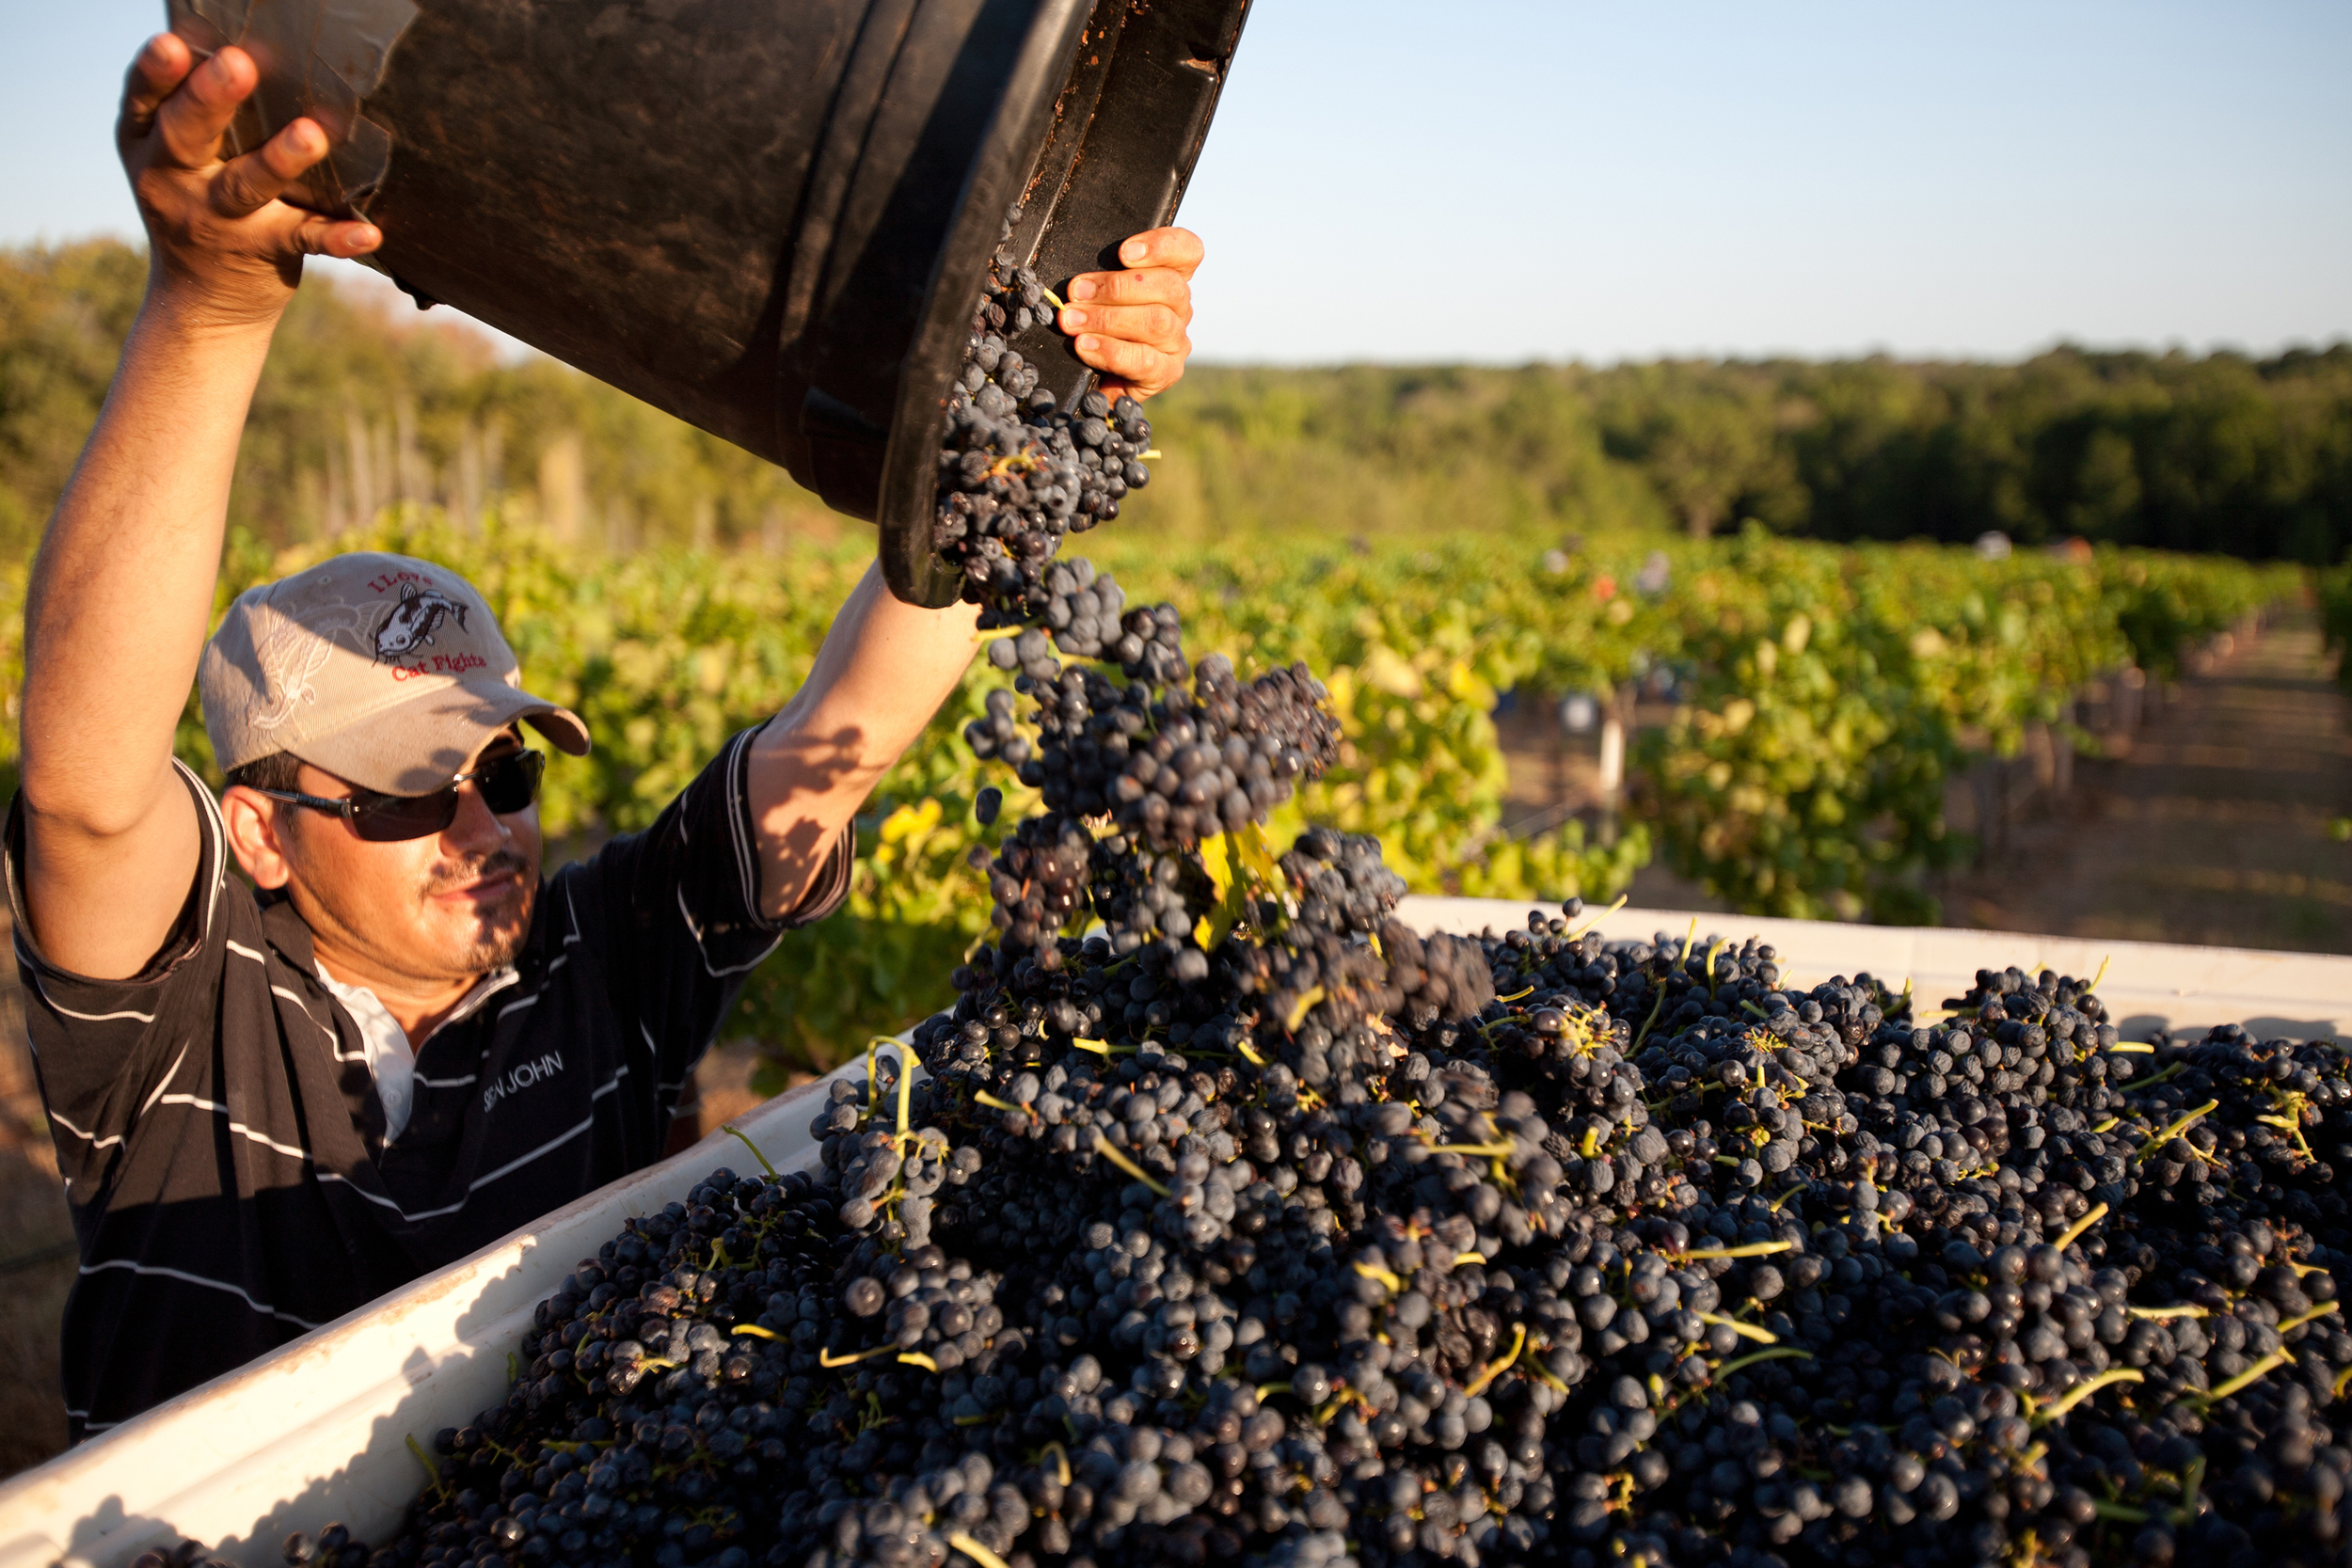 Harvest Time at Kiepersol VIneyards   ©   2015 KIEPERSOL ENTERPRISES